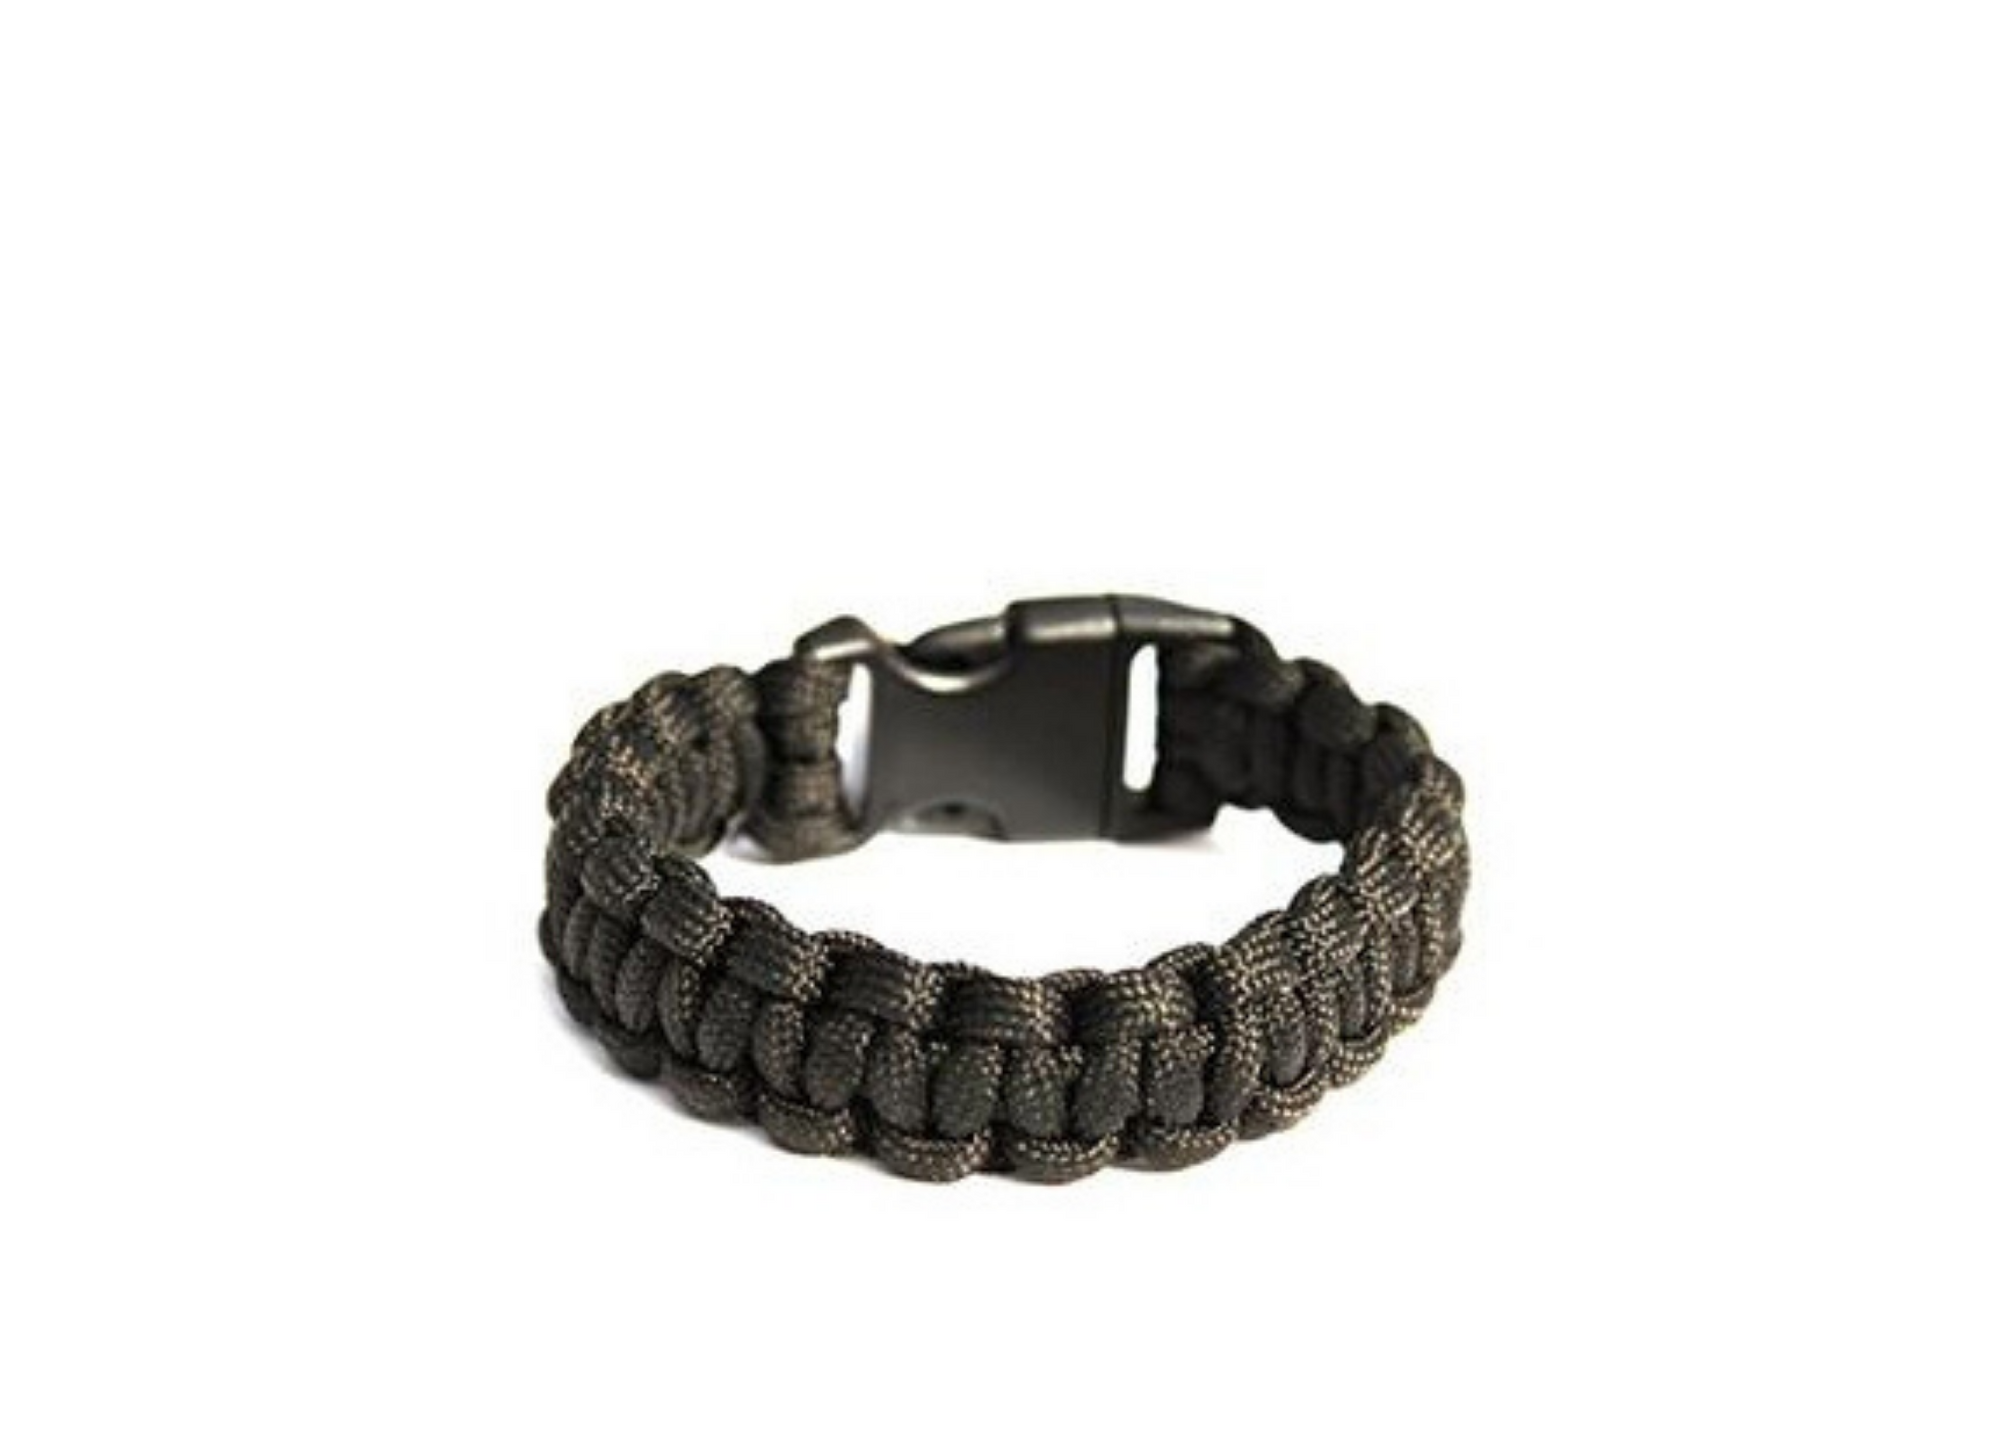 Mayday Emergency 3600 Food Bar Calories 3 Day Supply Ration with Paracord Bracelet